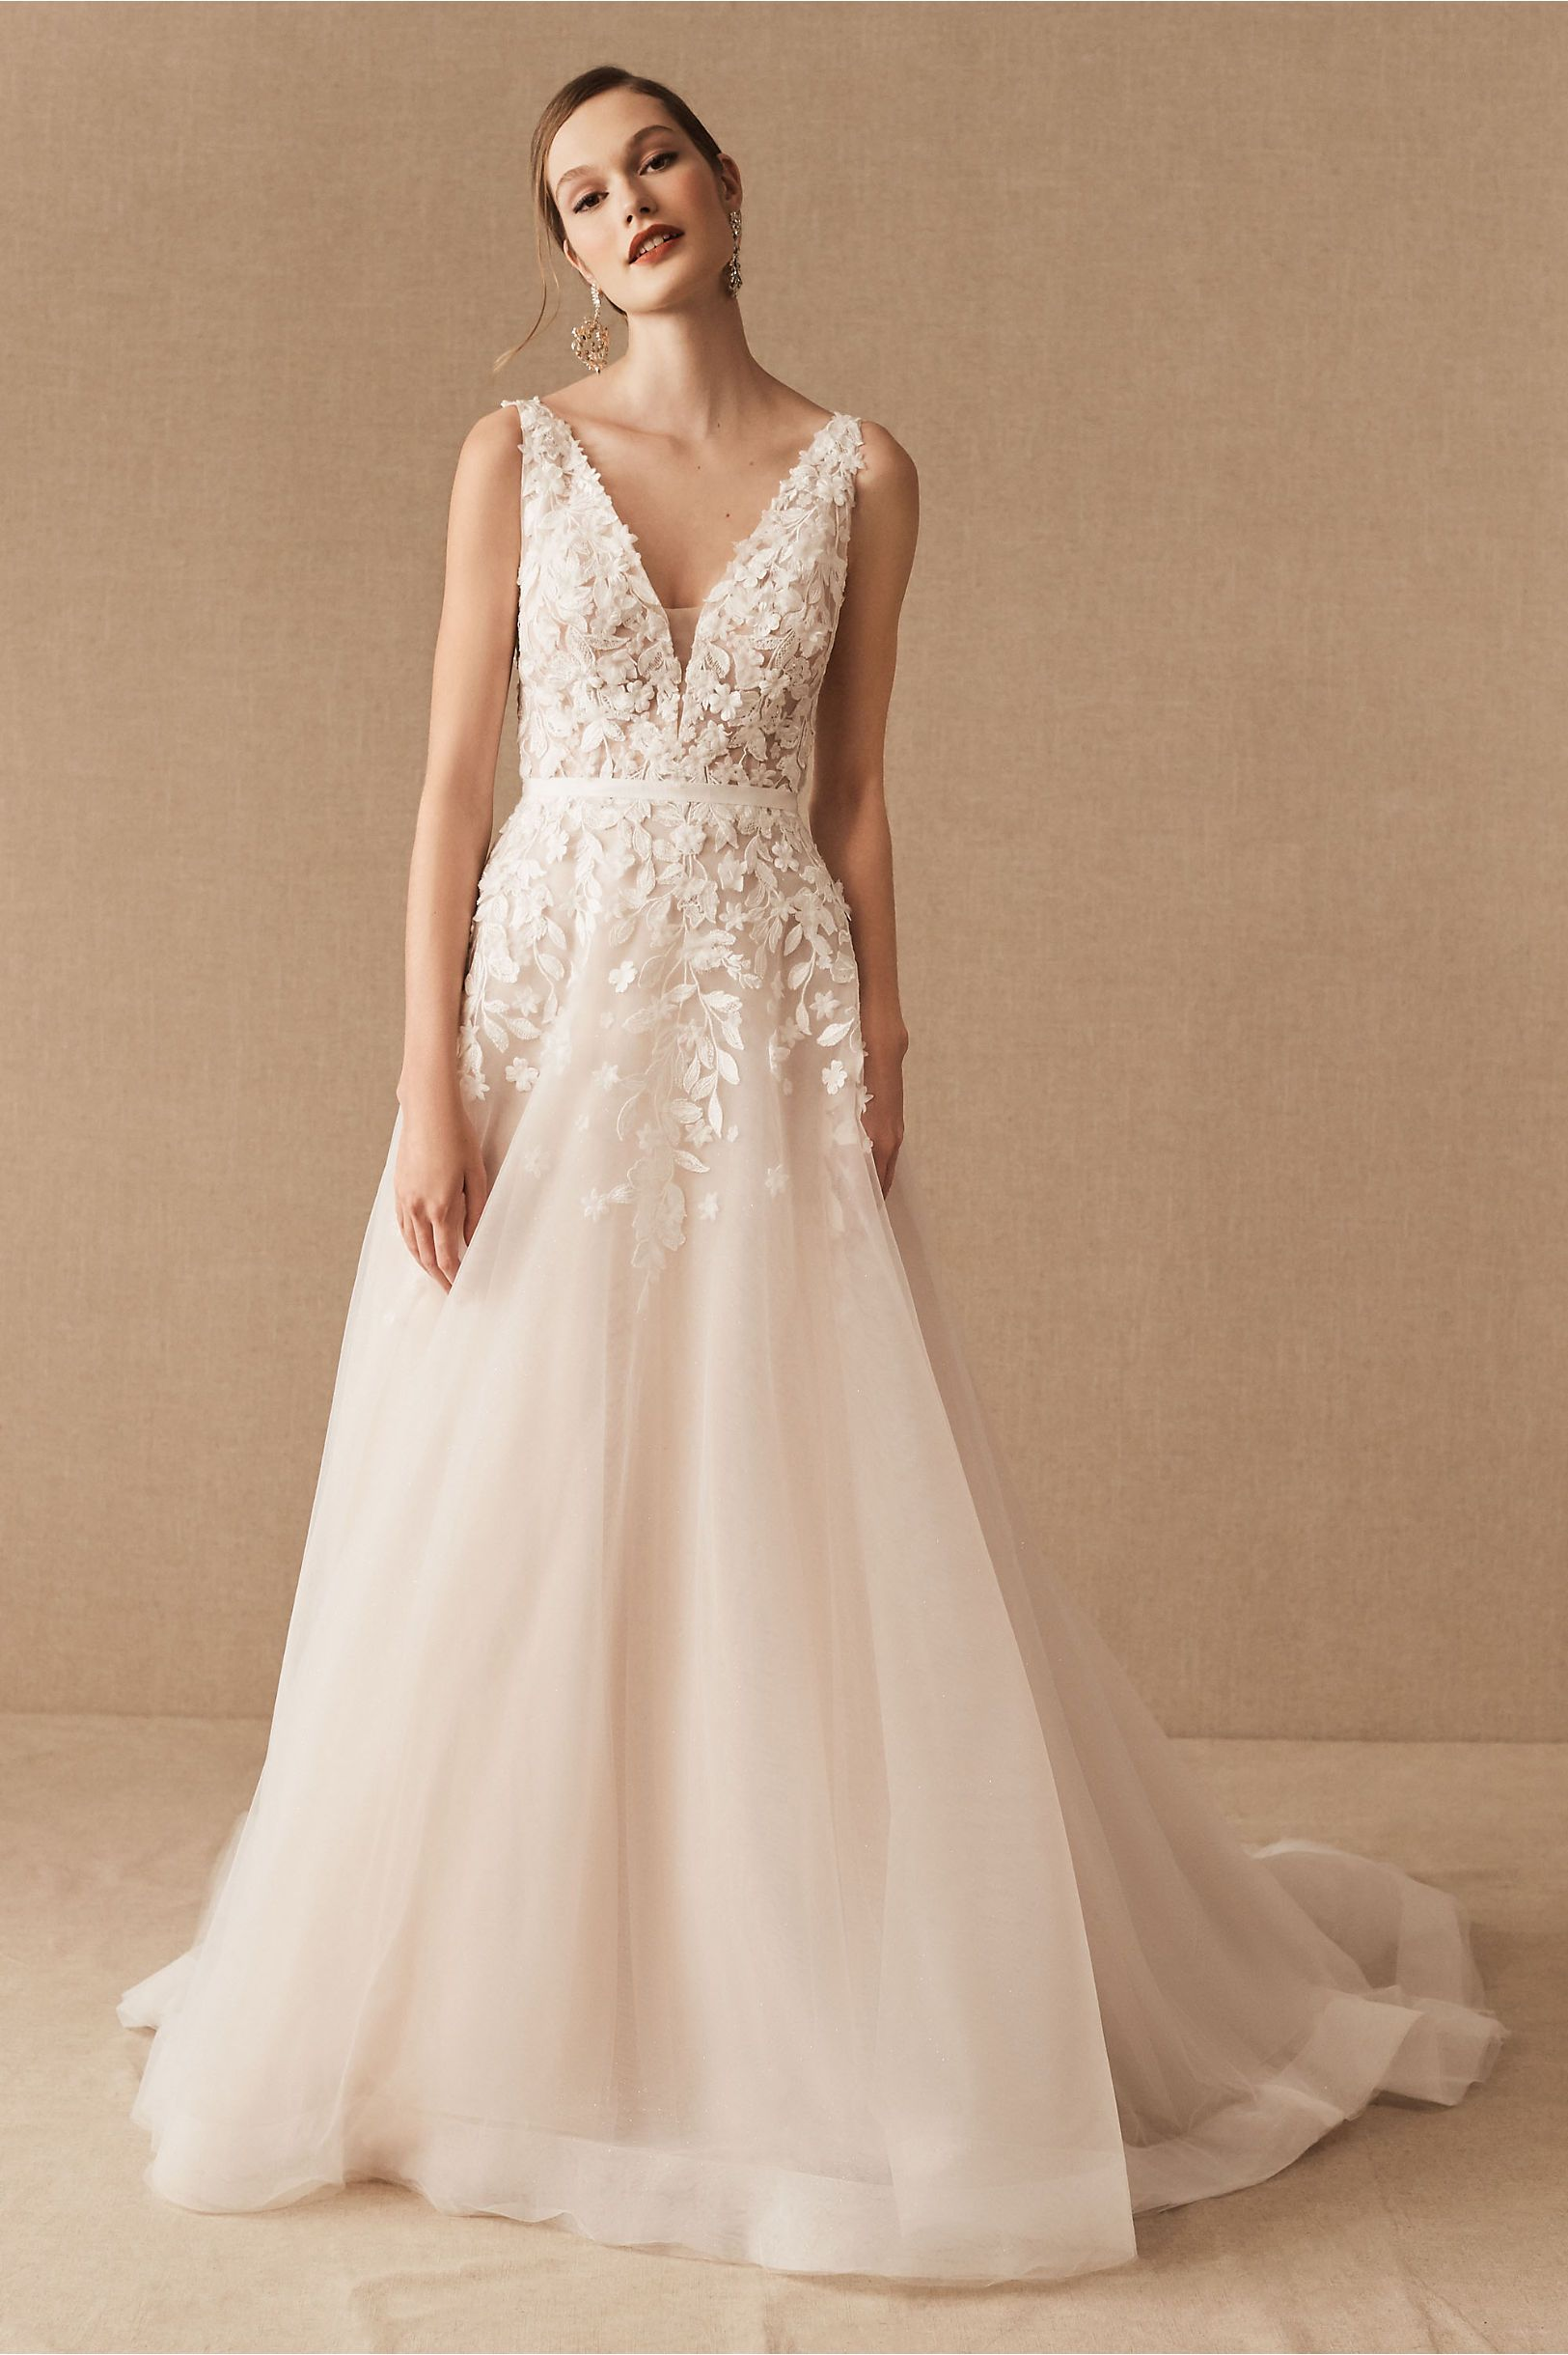 Best Places To Buy A Wedding Dress Online Dress For The Wedding In 2020 Buy Wedding Dress Online Wedding Dress Buy Wedding Dress Online